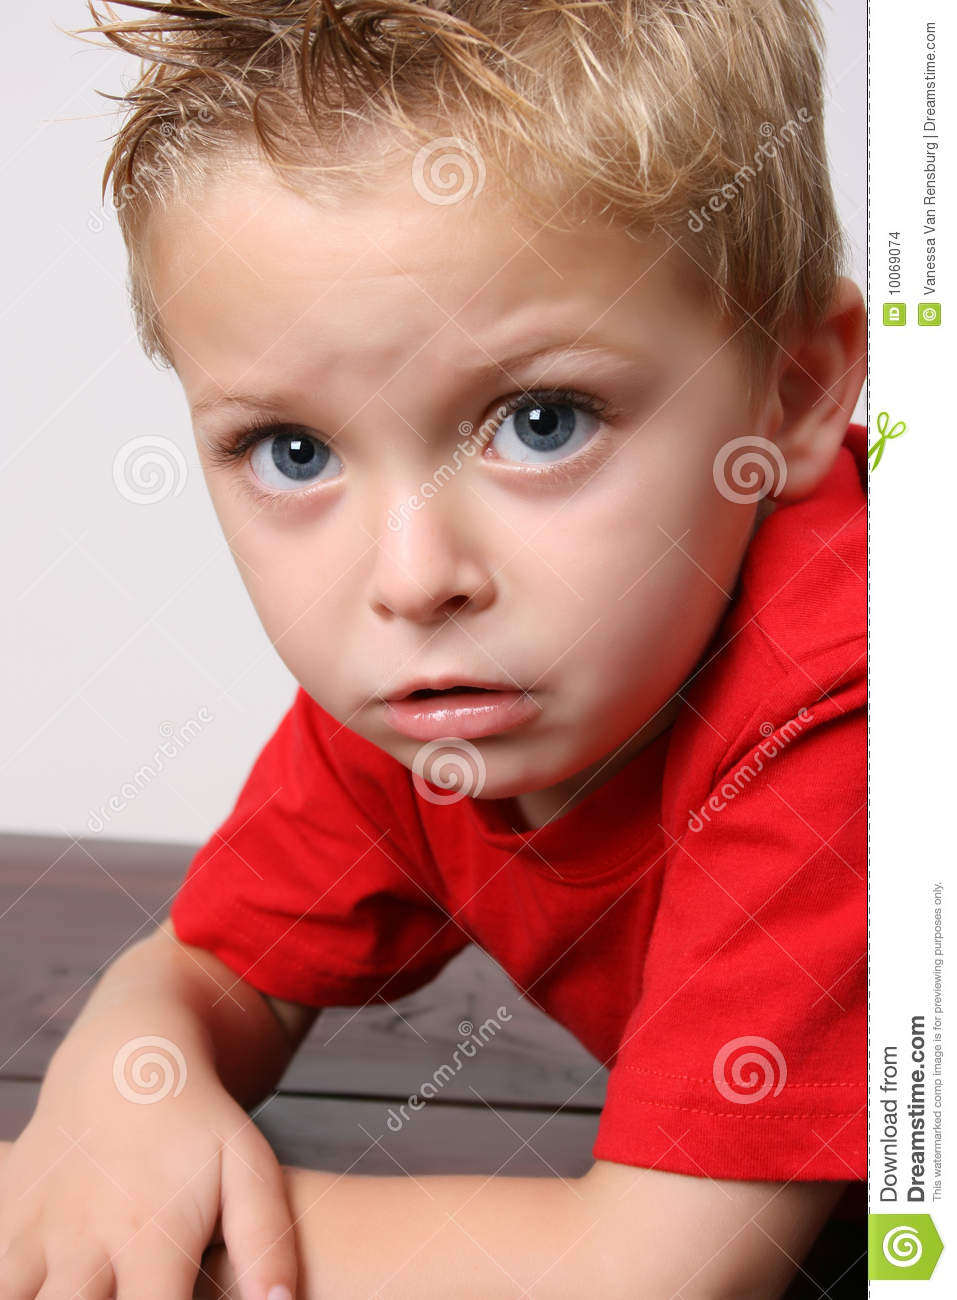 Beautiful blond toddler on a white background.